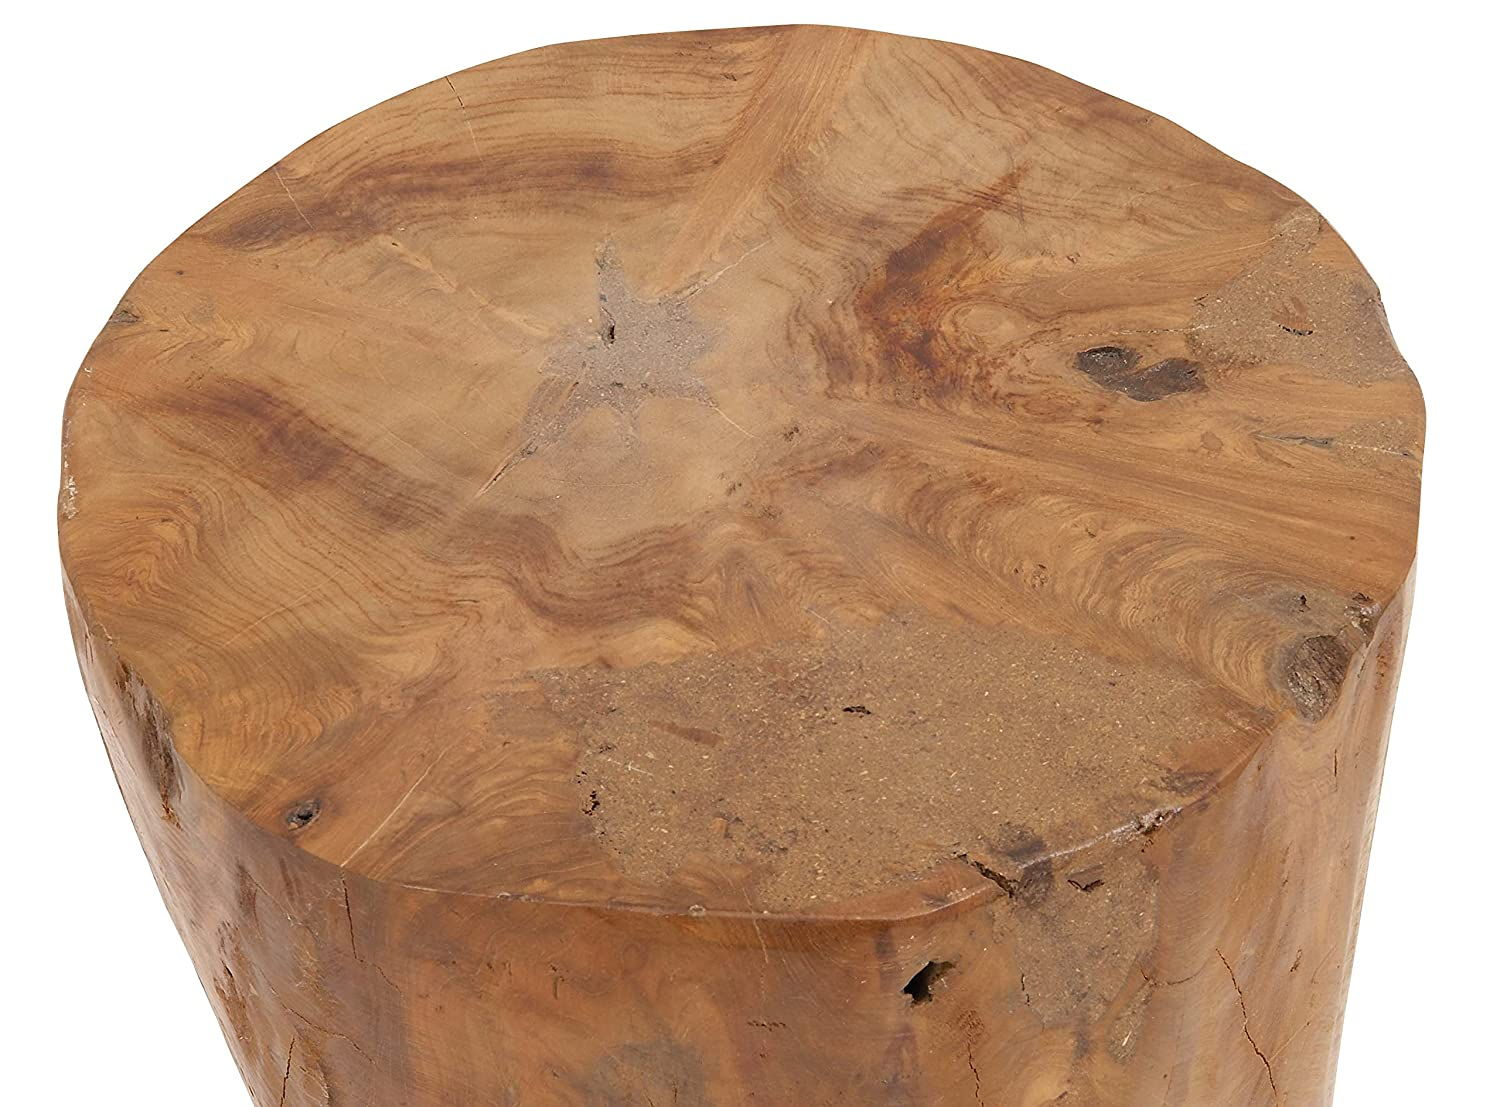 Deco 79 50840 Teak Wood Stool Natural 16 x 12 Round Resin-Finished Medium Mahogany Brown//Clear